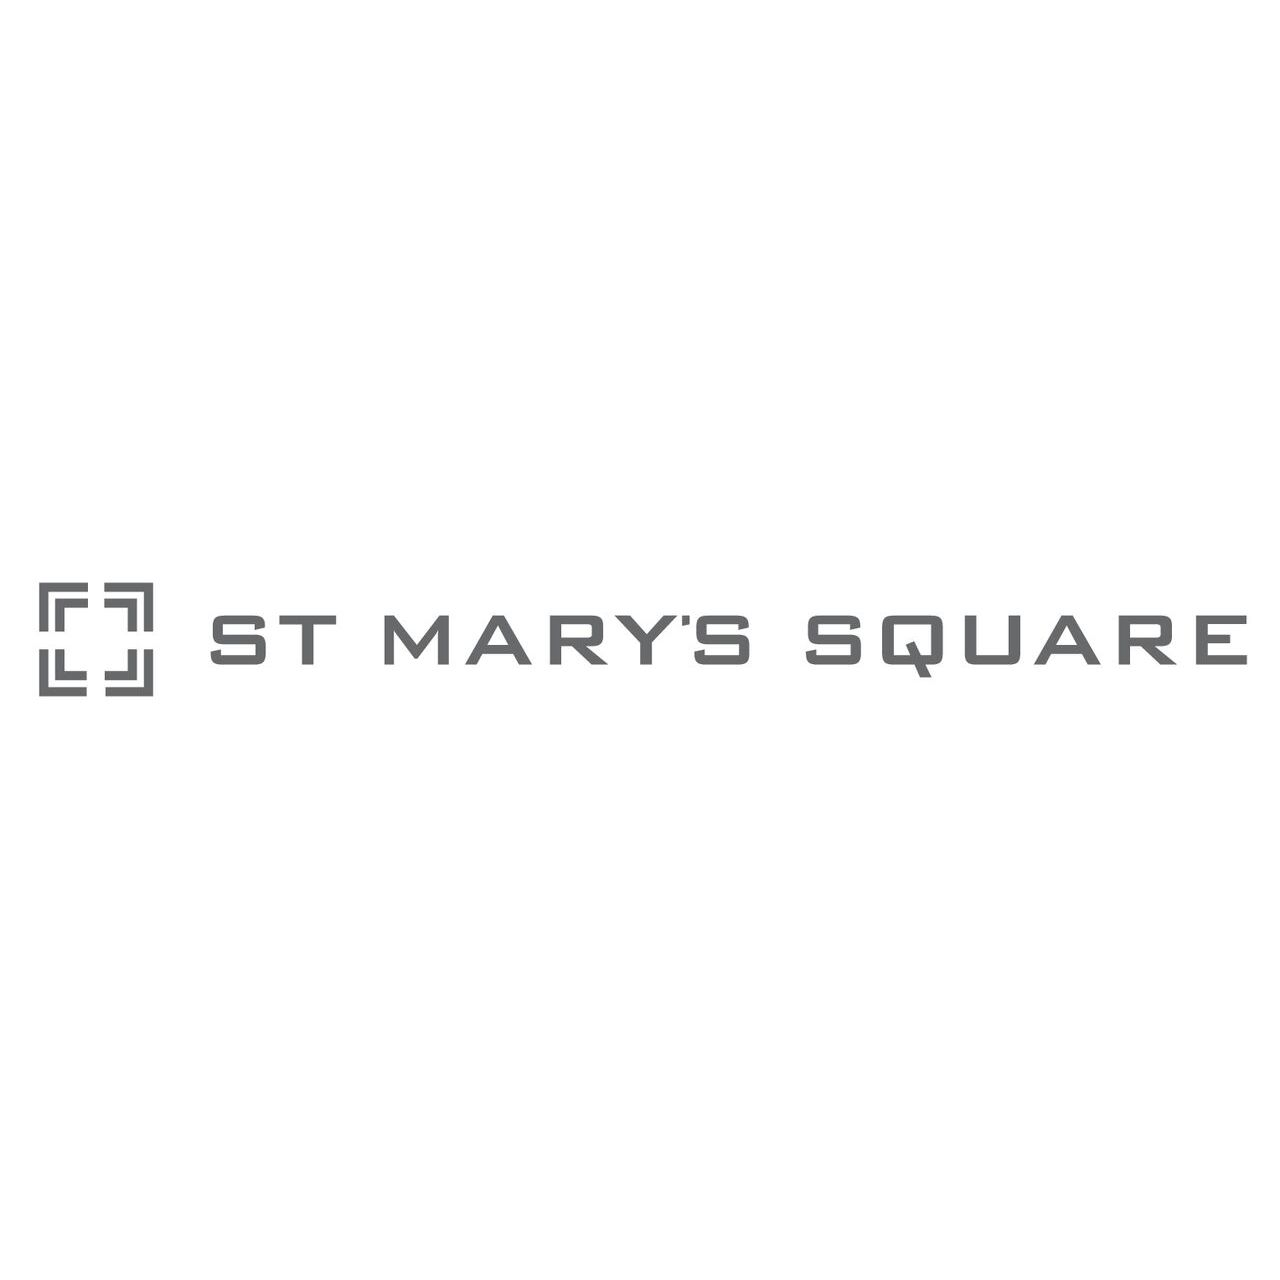 St. Mary's Square Apartments